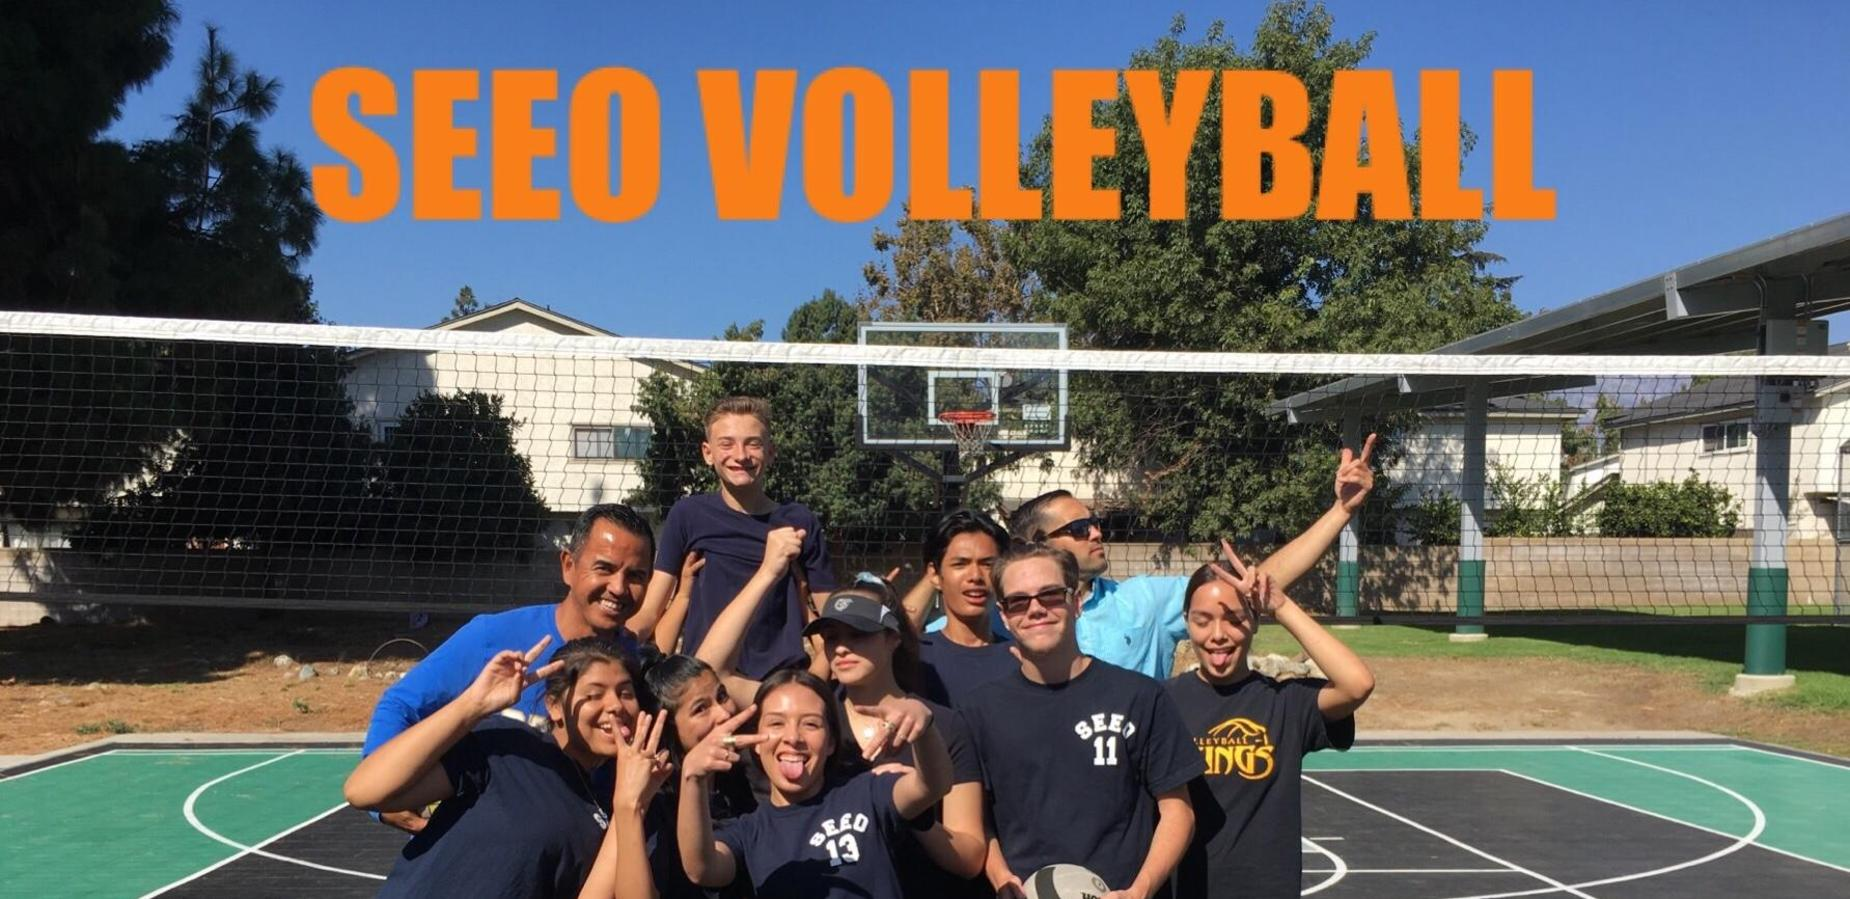 SEEO's Volleyball Team